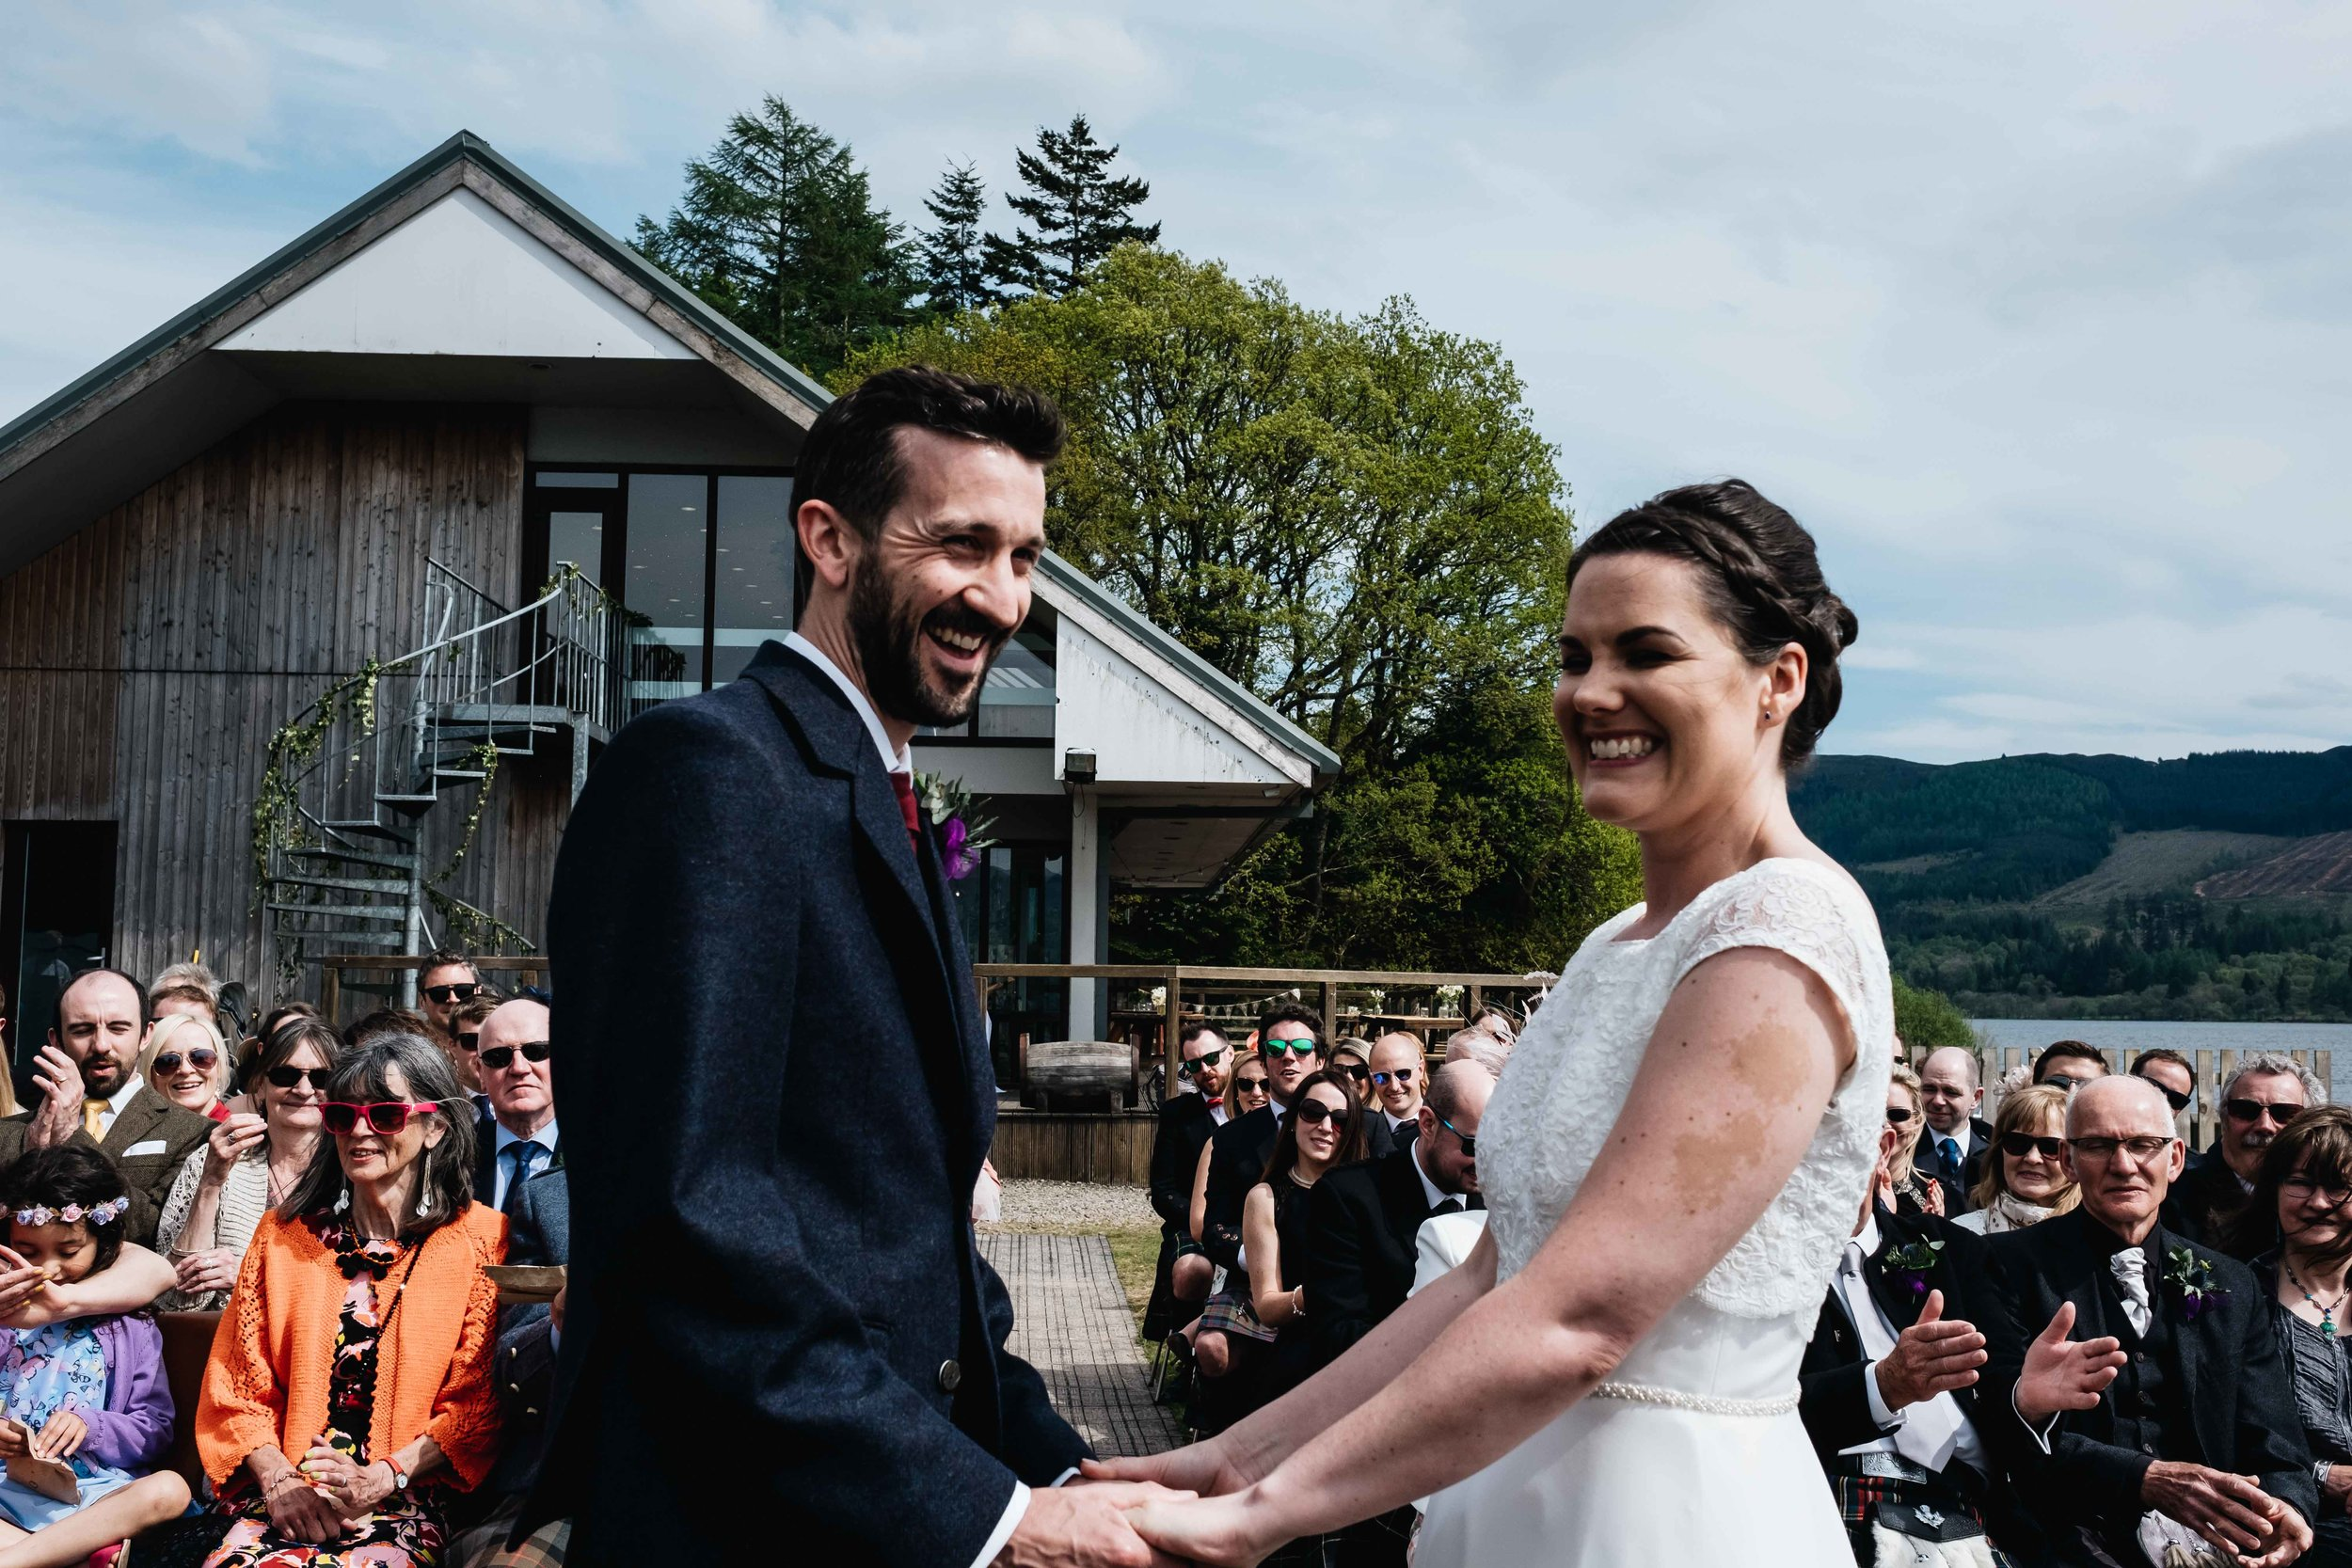 bride and groom hold hands smiling during their outdoor wedding ceremony